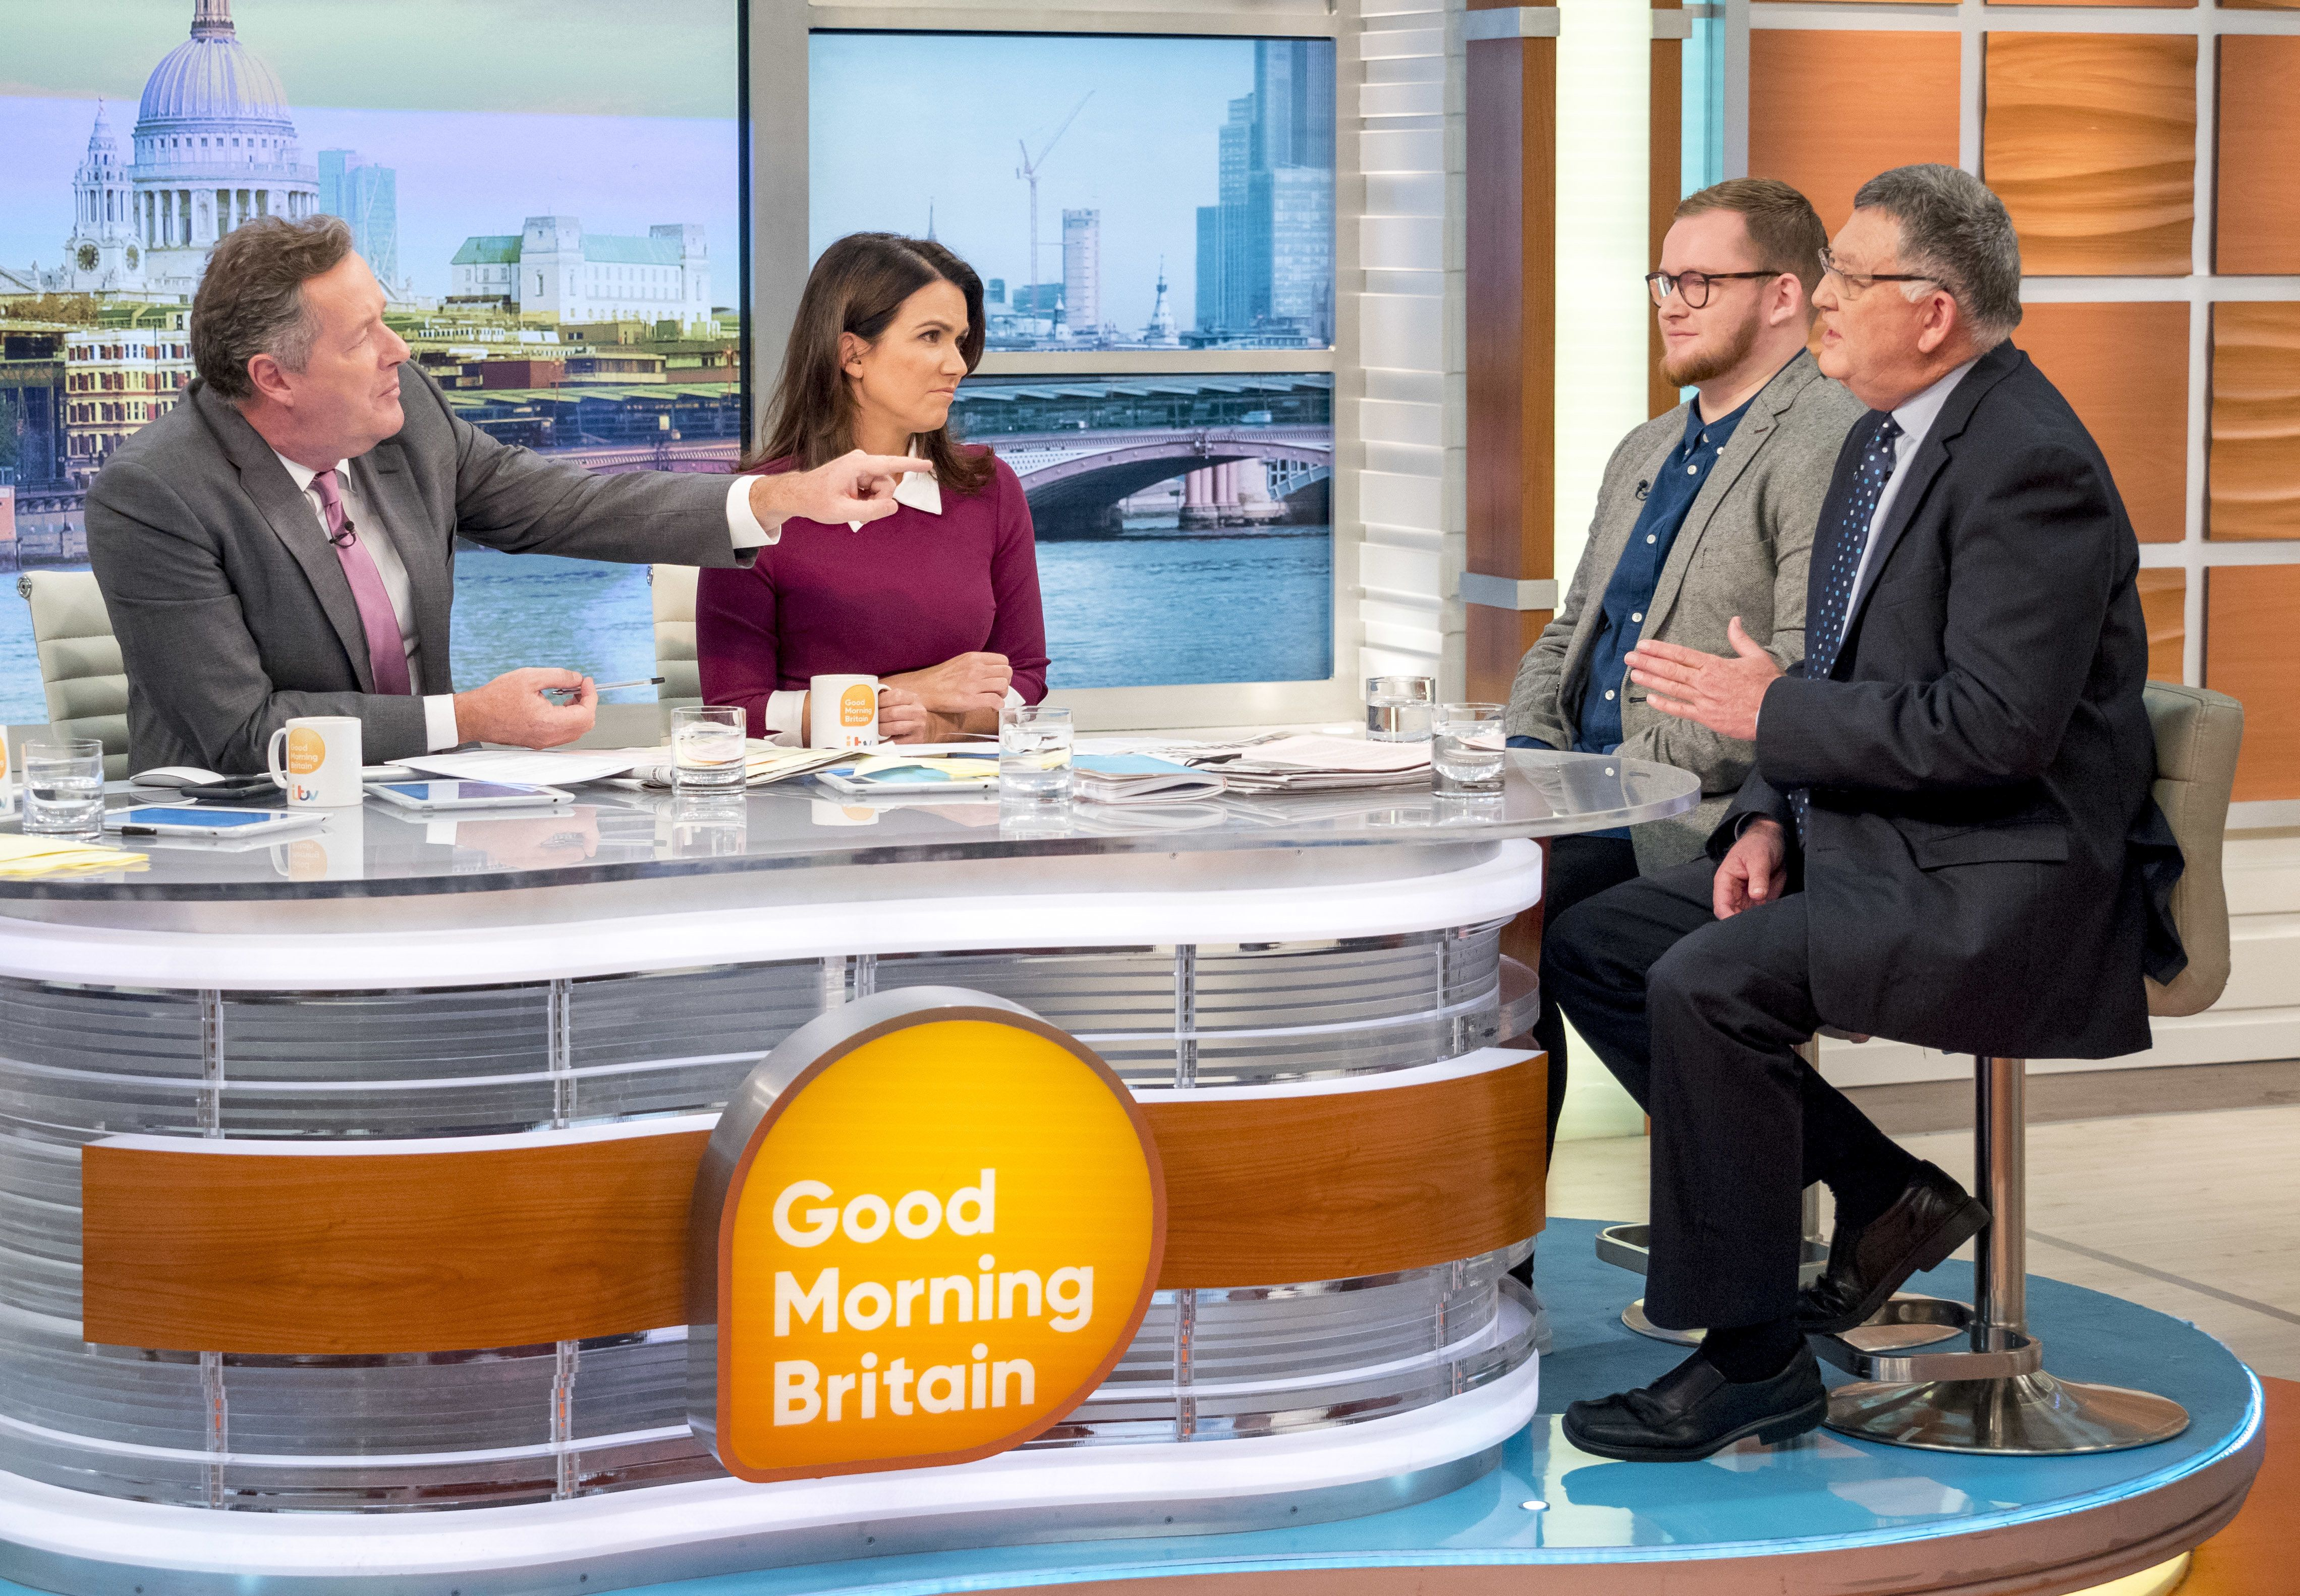 <strong>'Good Morning Britain' caused controversy with an interview with a gay conversion therapist&nbsp;</strong>